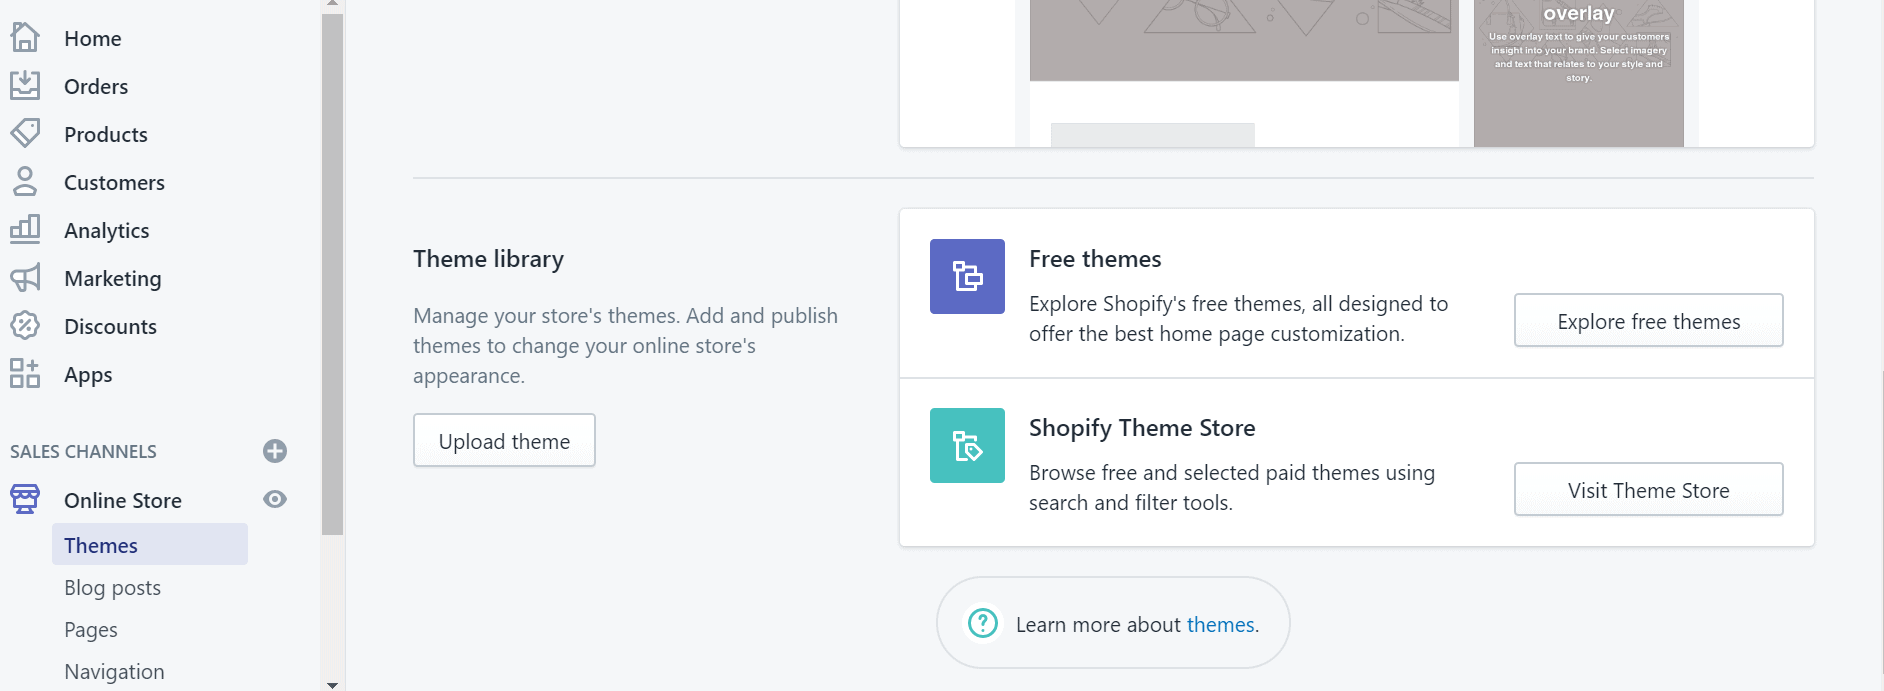 Dropshipping From Amazon To Shopify - Upload a Shopify Theme